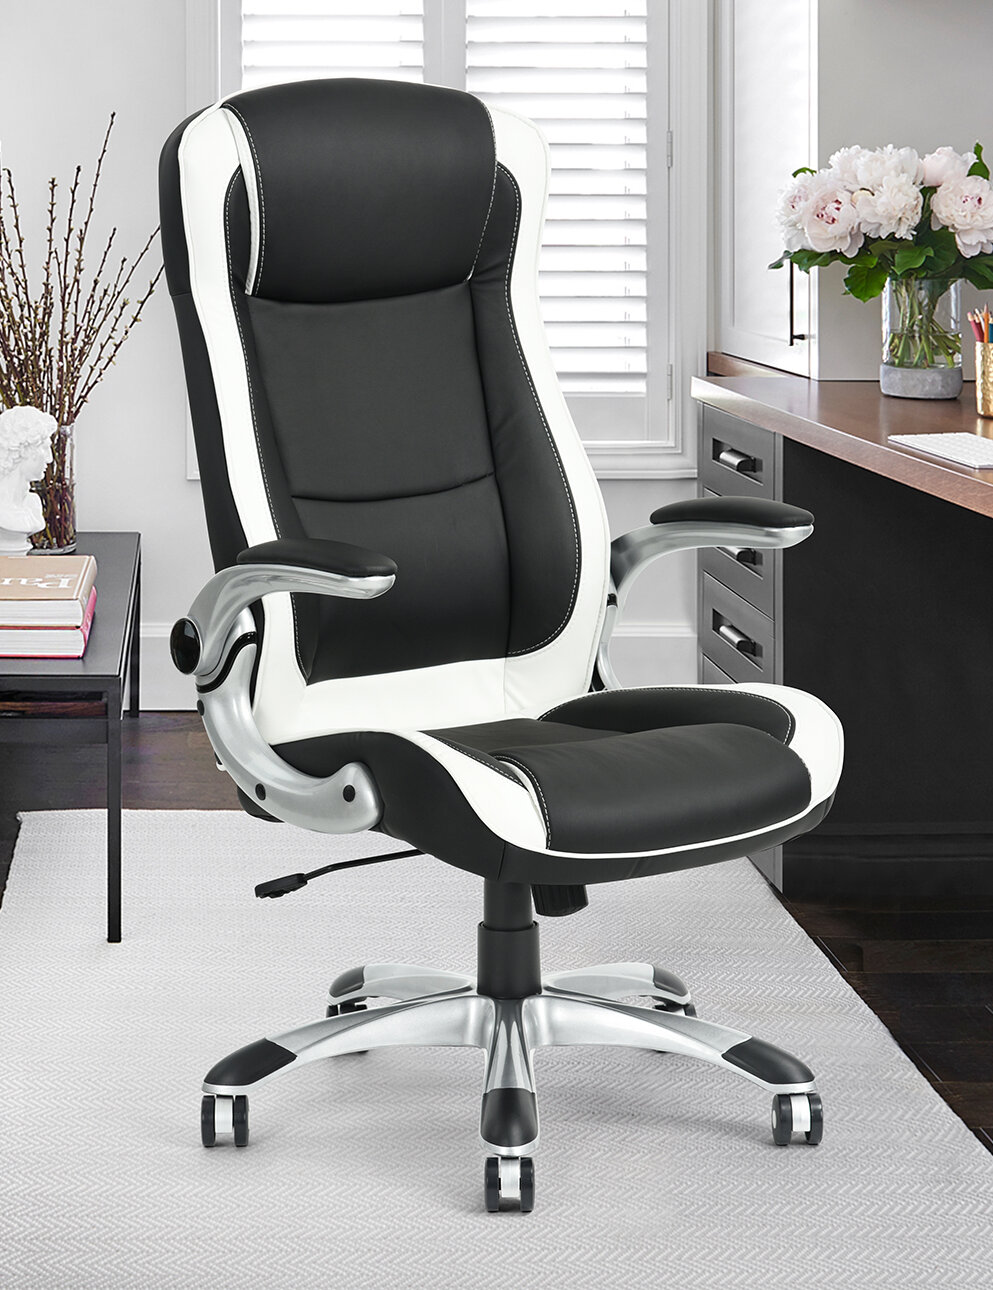 Incredible Perth Office Chair Download Free Architecture Designs Rallybritishbridgeorg